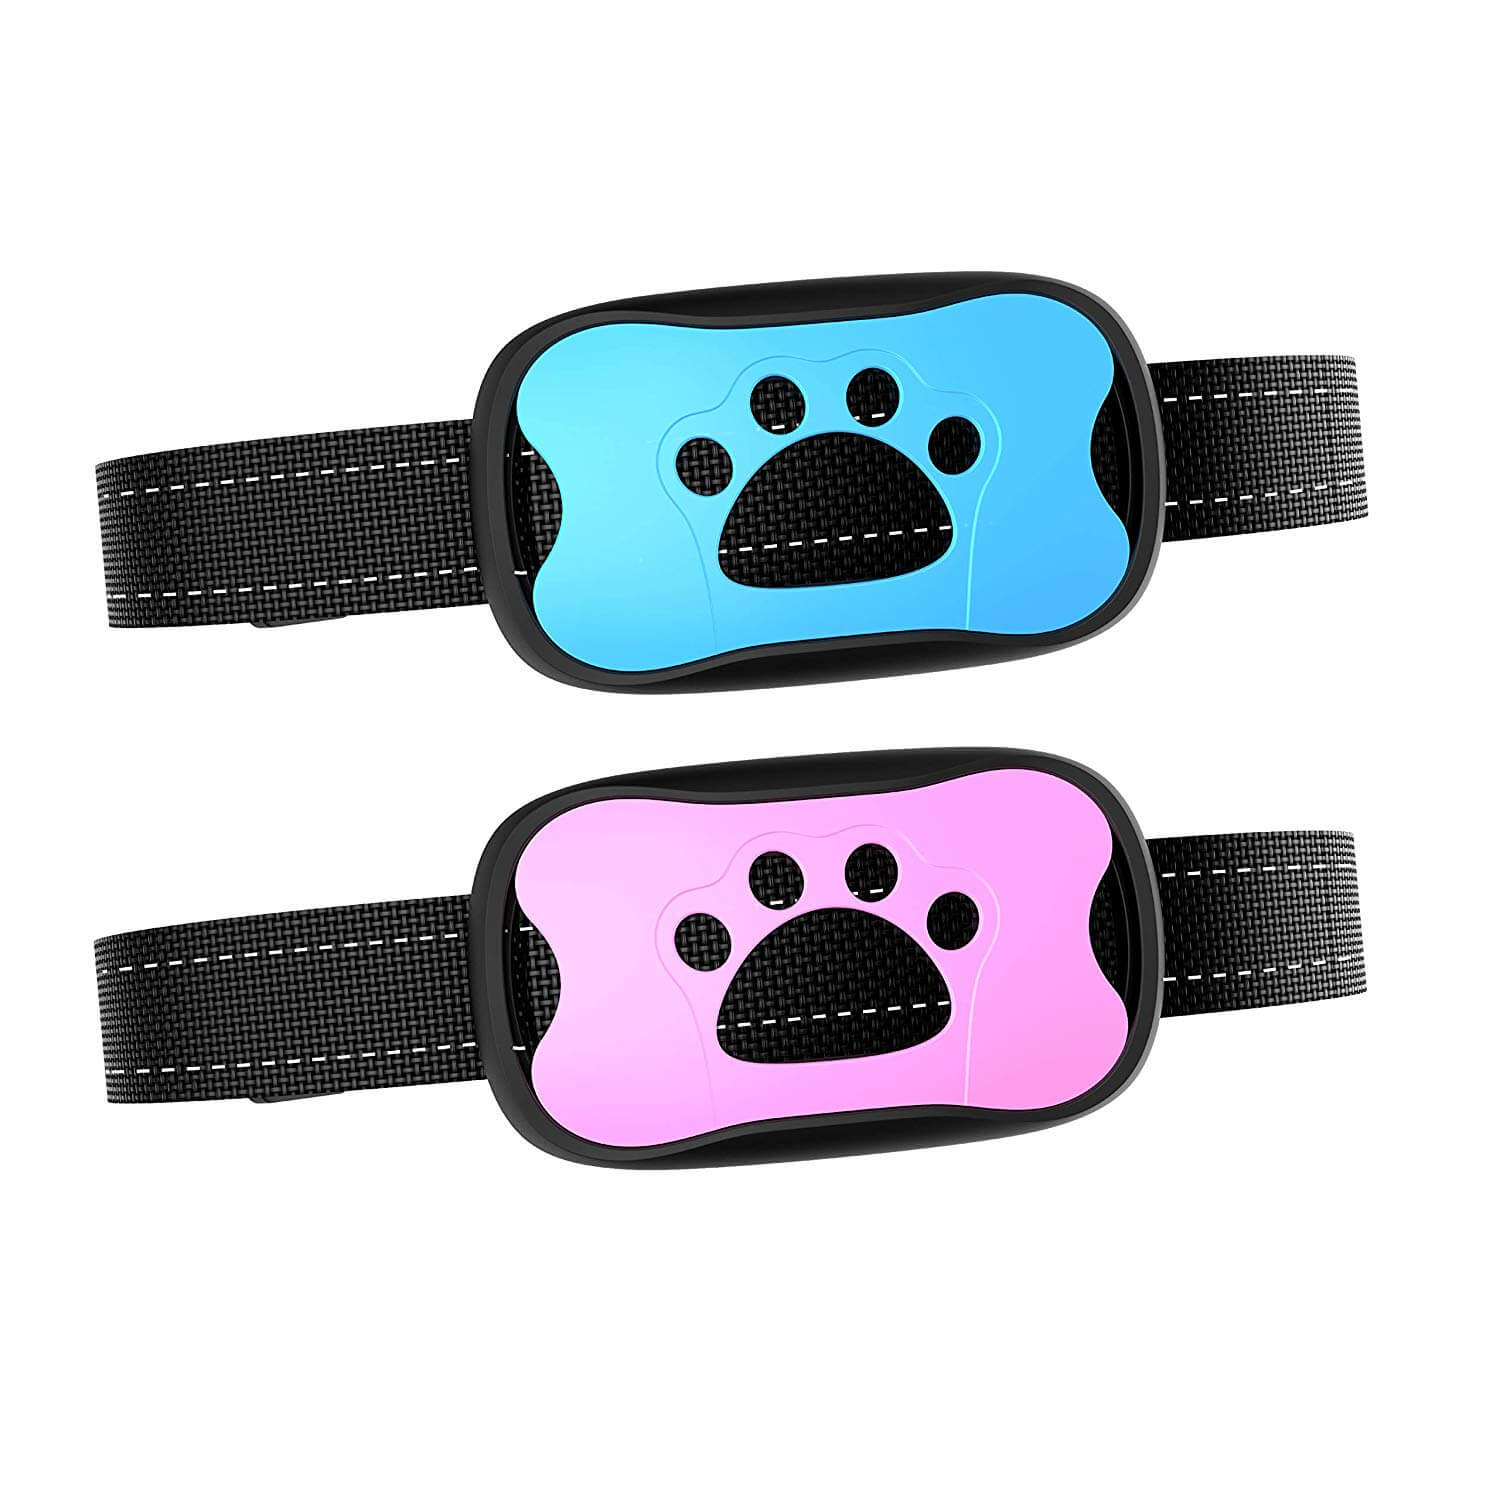 Top Dog anti-bark collar